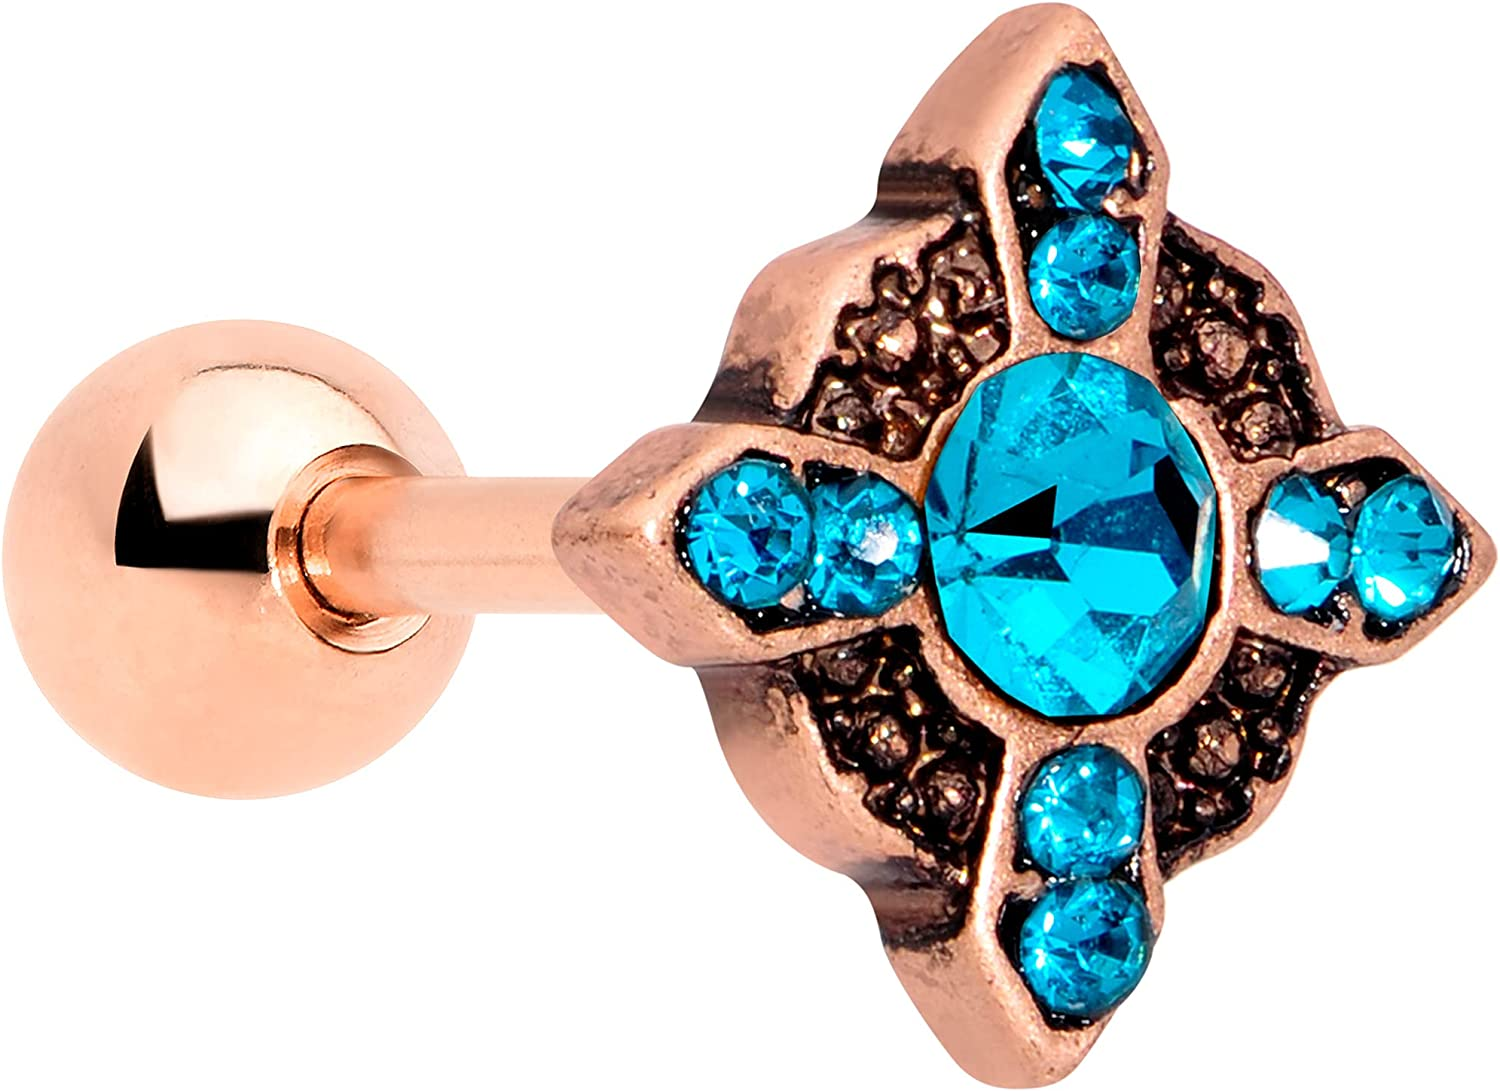 Body Candy 16G Womens PVD Stainless Steel Rosy Blue Accent Cross Cartilage Earring Helix Tragus Jewelry 1/4